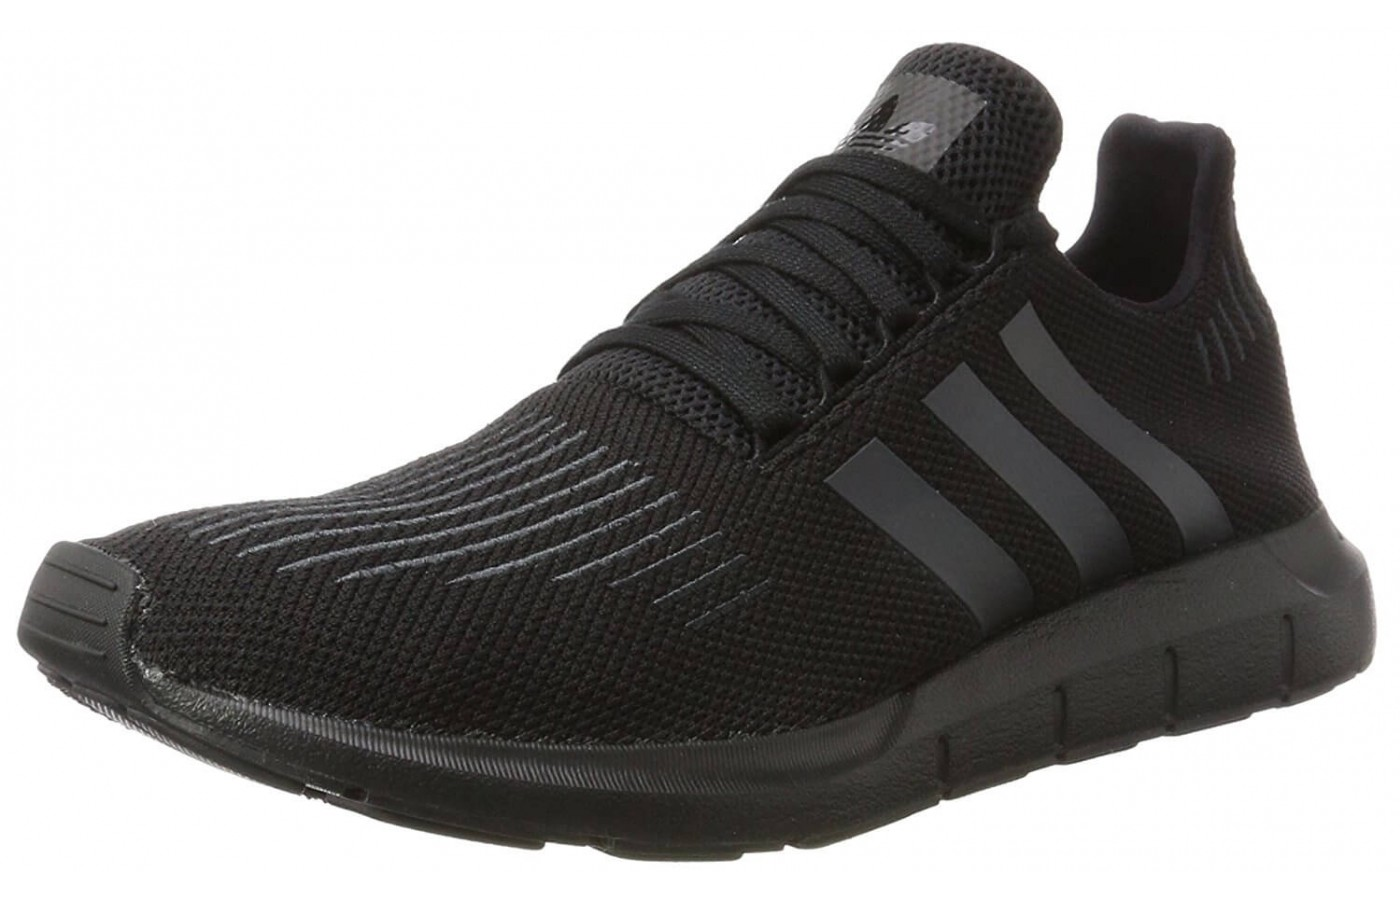 09e123c3a The Adidas Swiftrun Primeknit is a lightweight runner with a radical new  design philosophy.